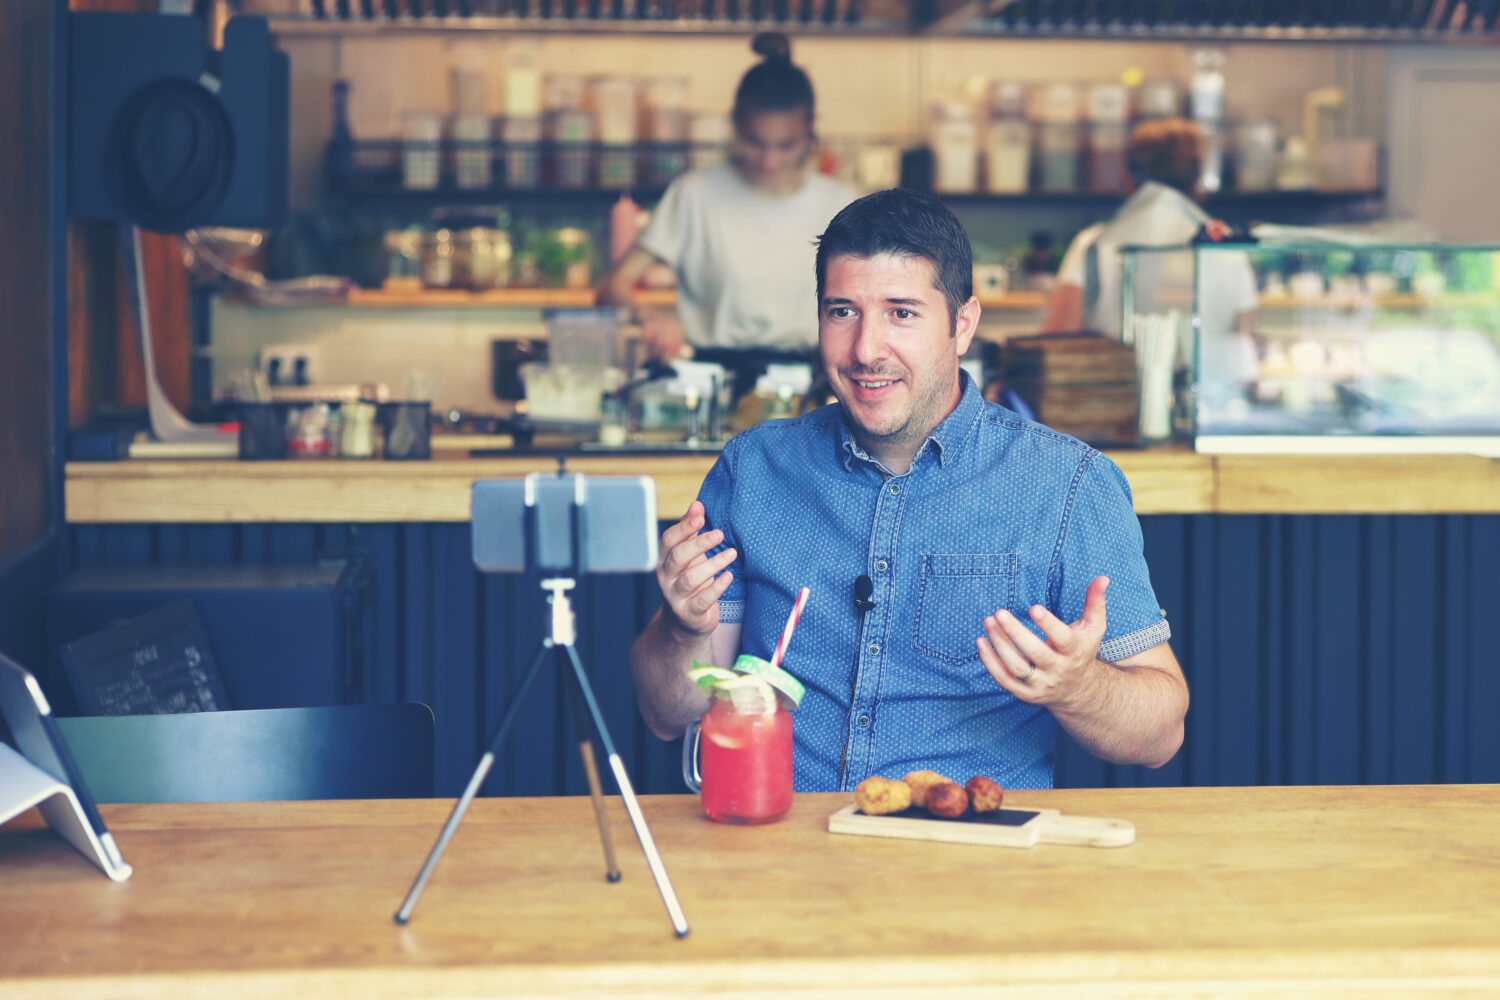 man with blue shirt recording himself using a tripod and camera at a restaurant